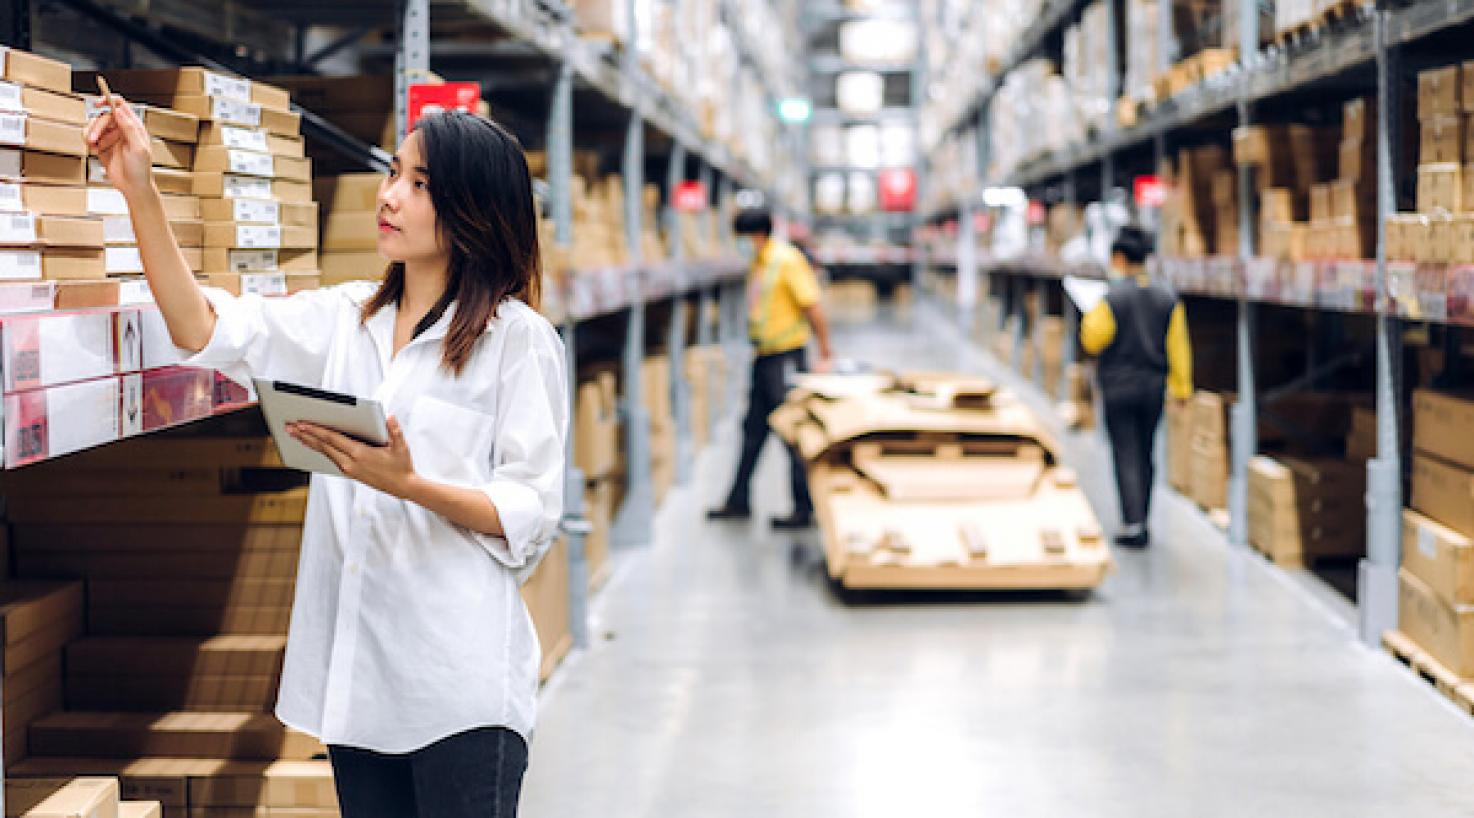 Inventory Management Questions You Should Ask